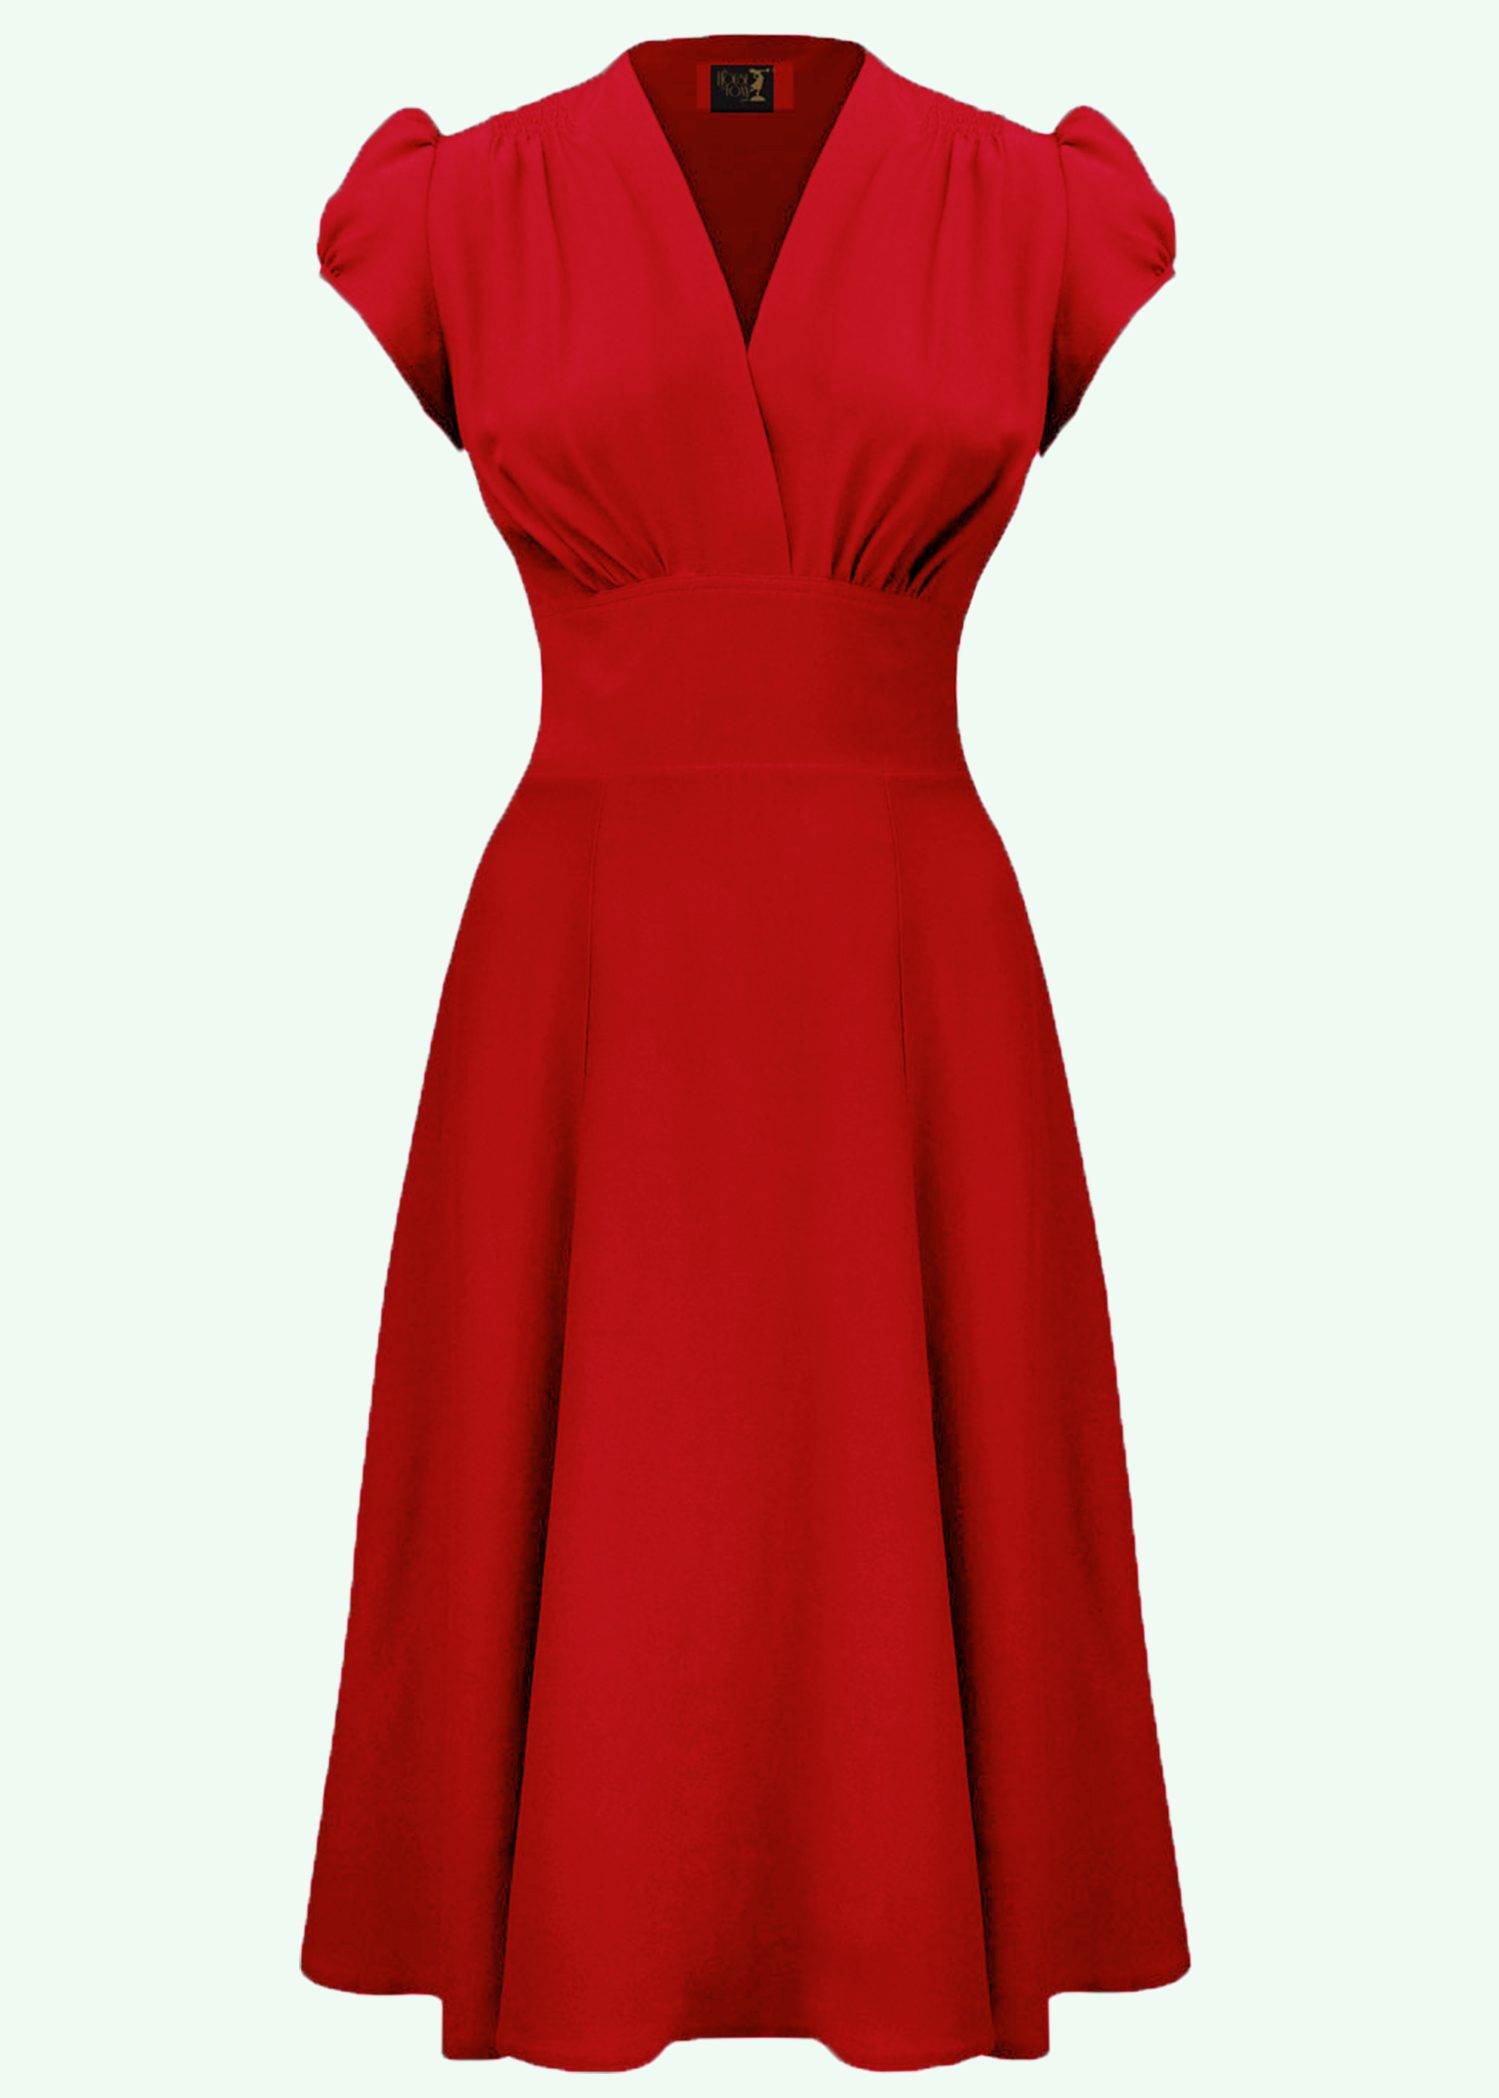 Red vintage dress from House Of Foxy, feminine dress in high quality